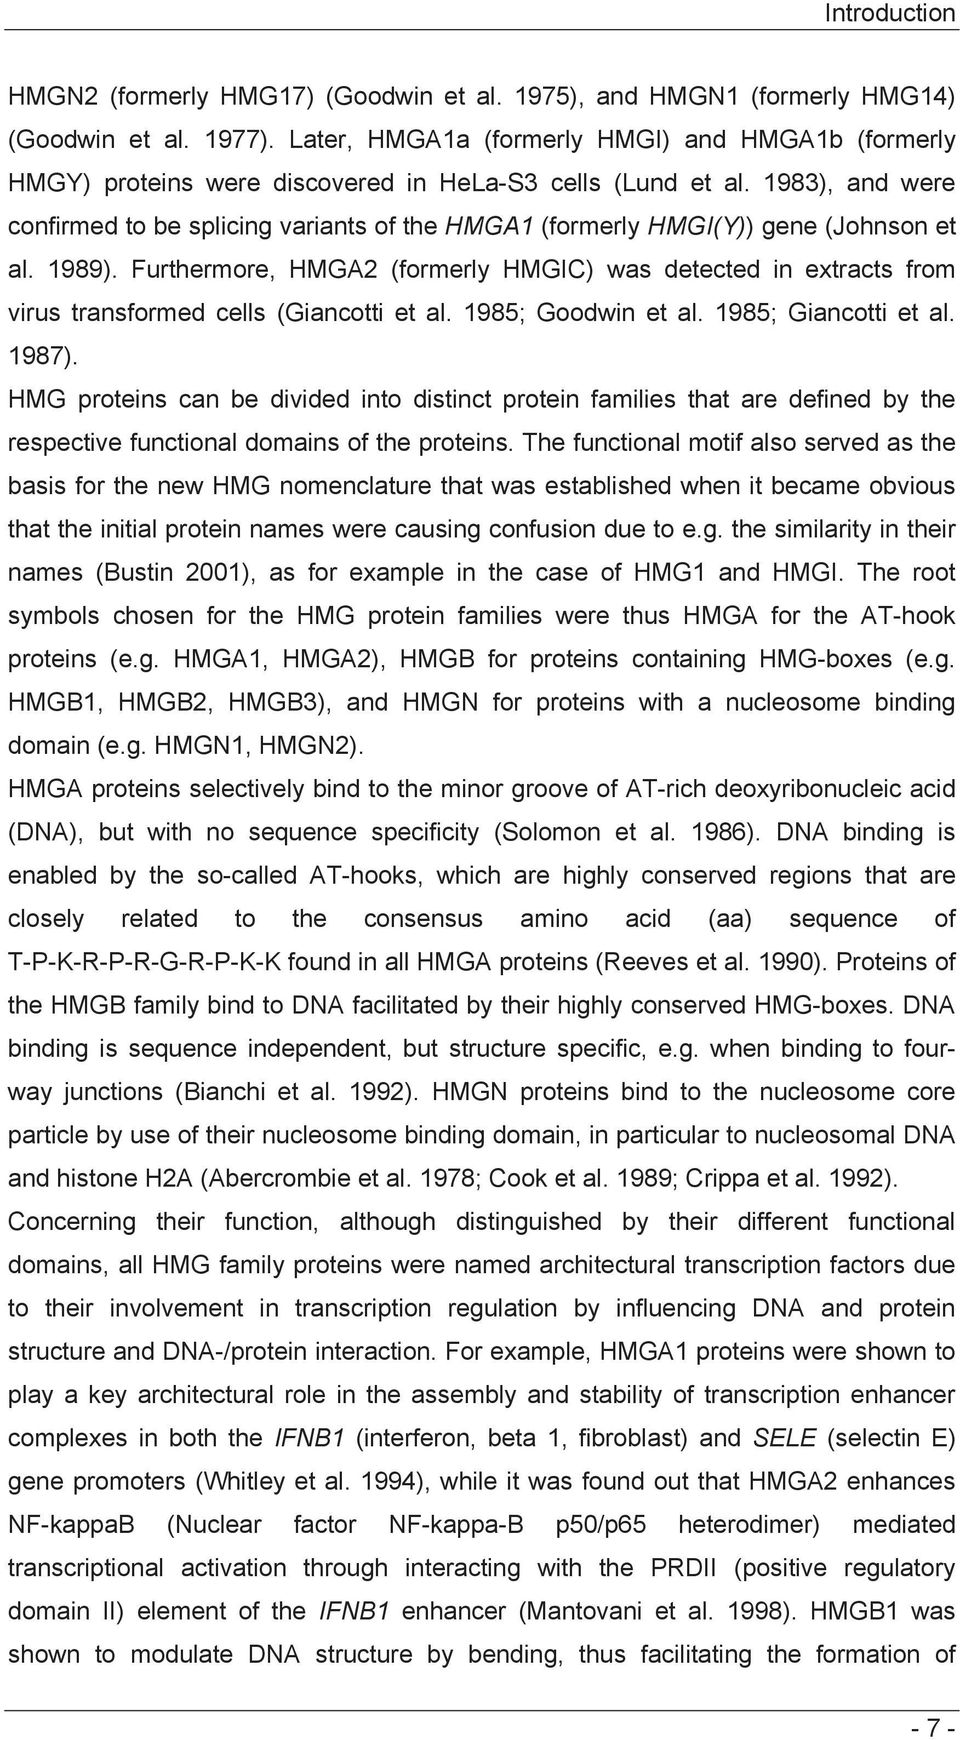 1983), and were confirmed to be splicing variants of the HMGA1 (formerly HMGI(Y)) gene (Johnson et al. 1989).